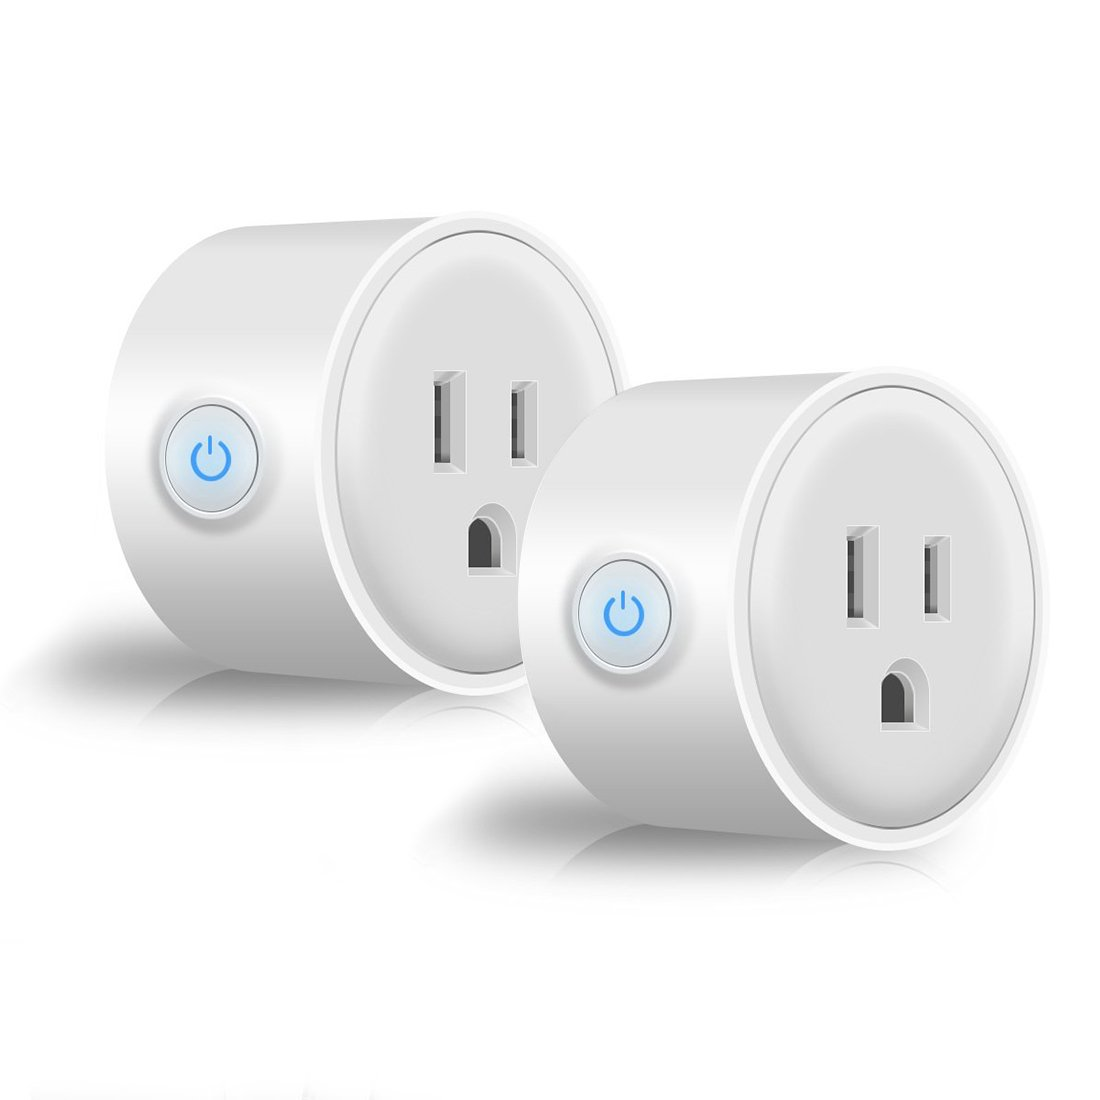 2-Pack Smart Plug Wi-Fi Home Electrical Timing Outlet Remote Control Power Switch No Hub Required Compatible with Alexa and Google Assistant